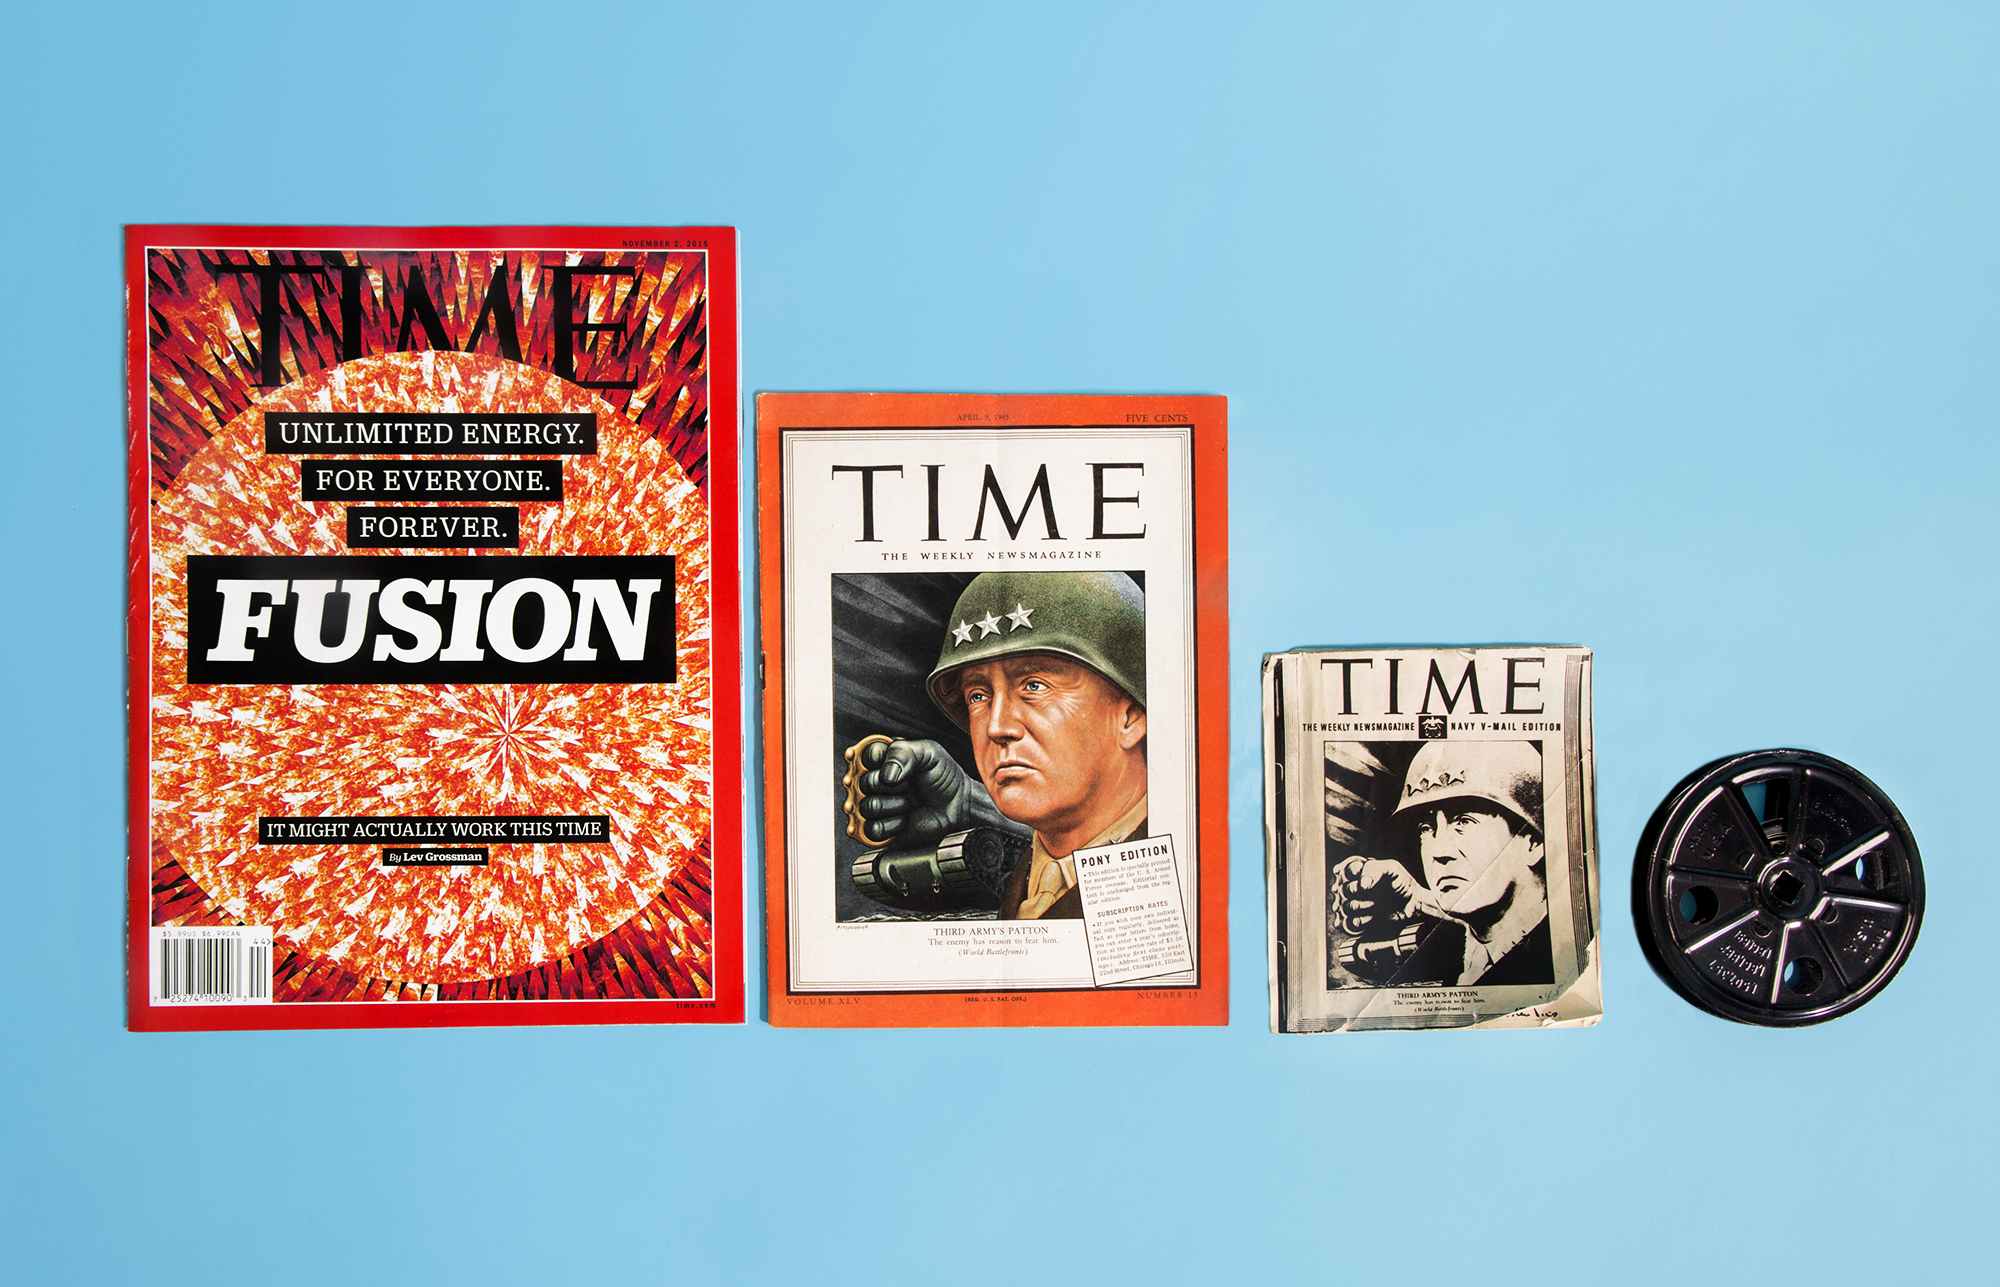 Pony Editions of TIME:  (regular sized edition of TIME at left for scale) In 1942, TIME began printing  pony  editions of its magazines for U.S. armed forces members fighting in World War II abroad. The slimmer, smaller copies had all the same text, but thinner paper and no advertisements, to facilitate shipping overseas. Pictured on the right is an even smaller microfilm copy of the magazine, printed in black and white on-site for troops who subscribed to the TIME microfilm reels (far right) that were even easier to ship.